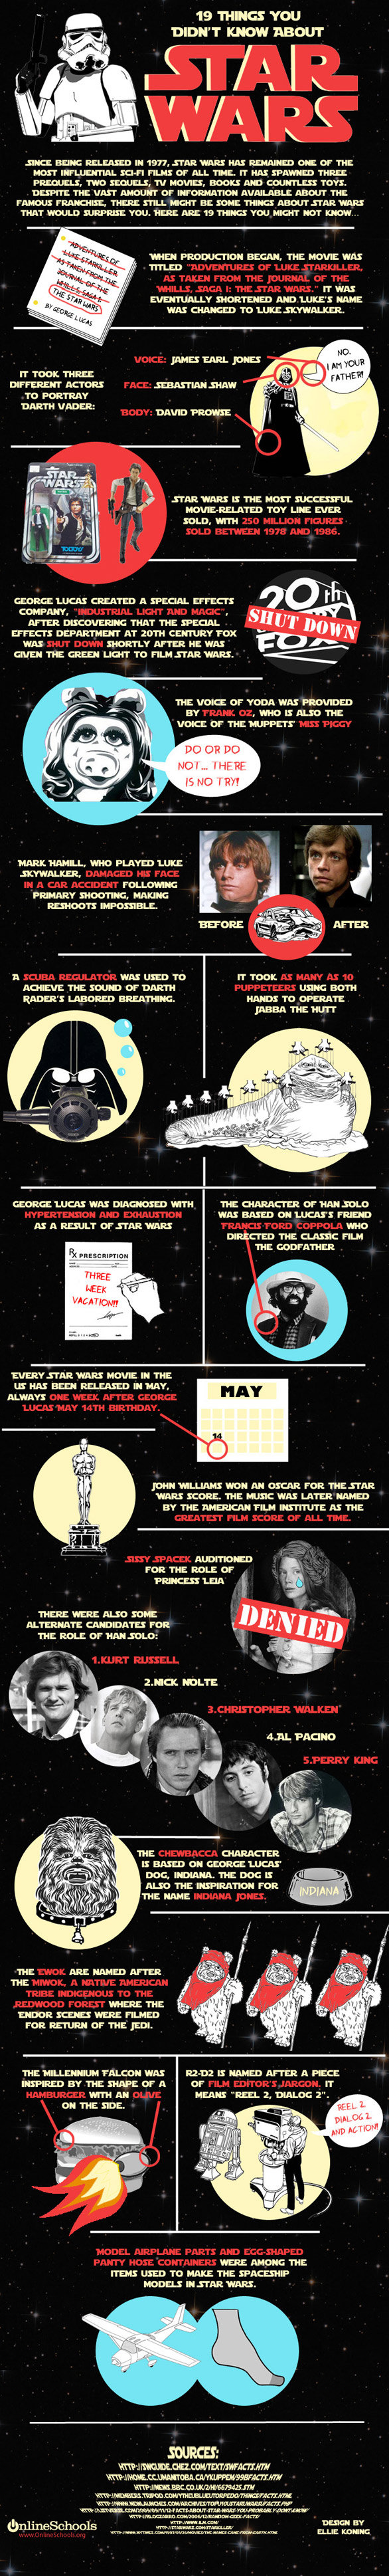 19 interesting Star Wars Facts. 19 things you might not know about Star Wars, unless you're truly a die hard fan. This is probably a repost, but I haven't seen